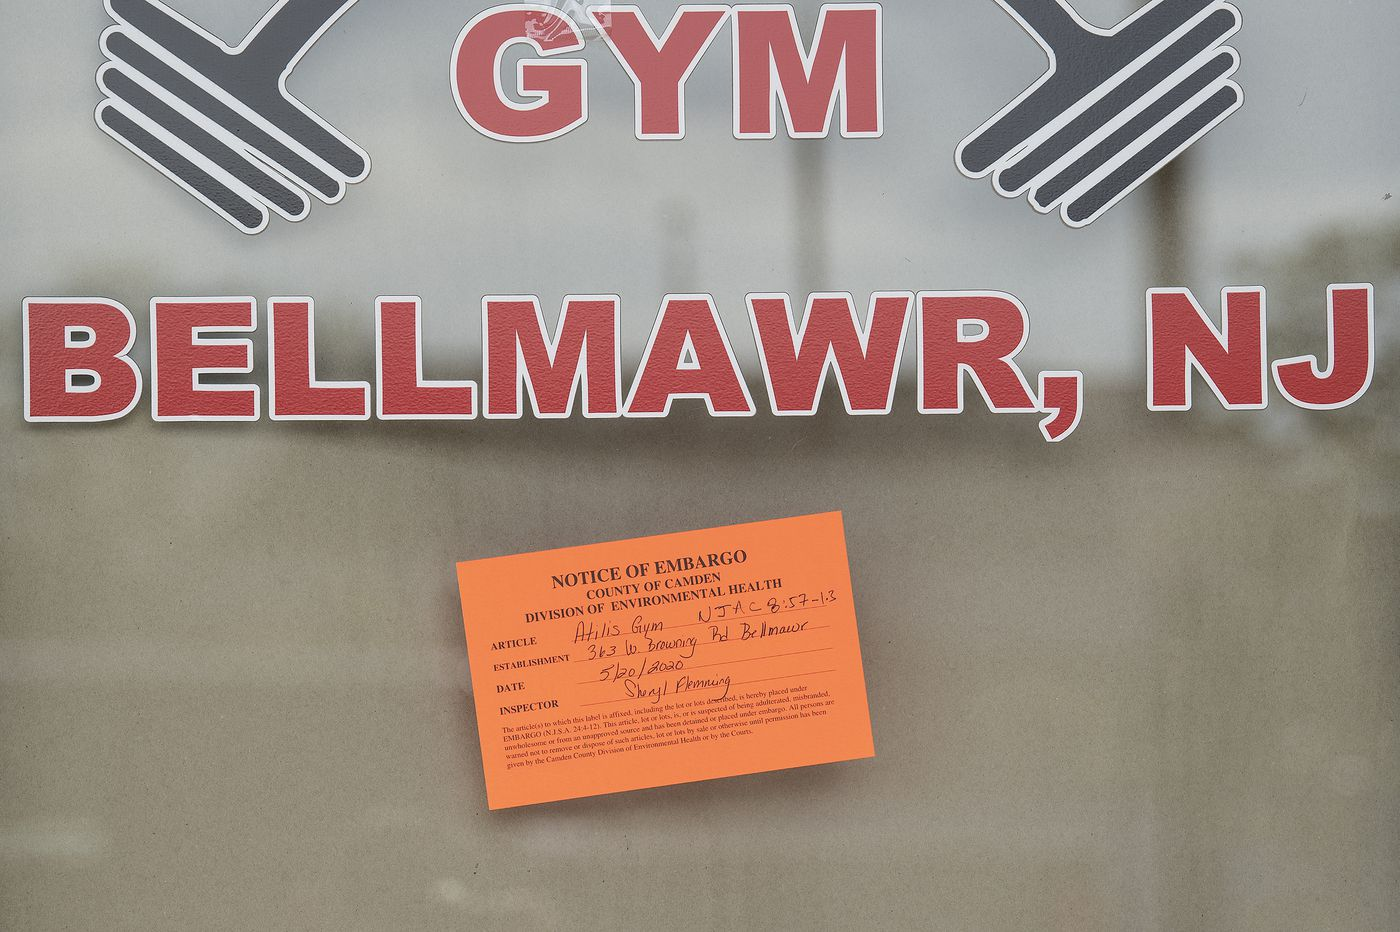 Atilis Gym in Bellmawr closed by state Health Department after reopening against Gov. Murphy's orders